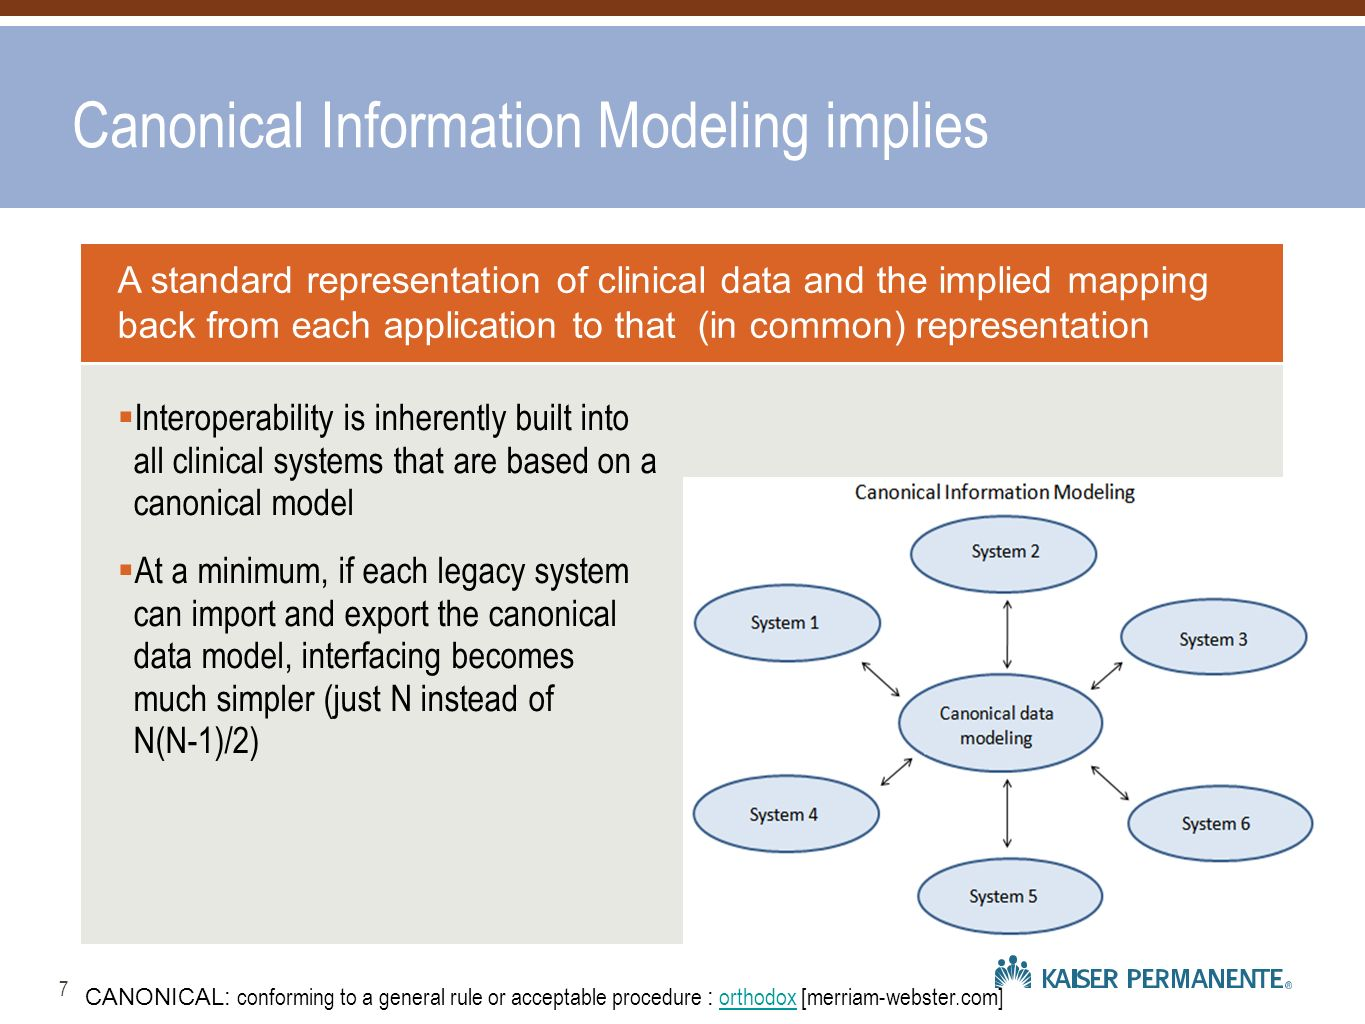 Canonical Information Modeling implies